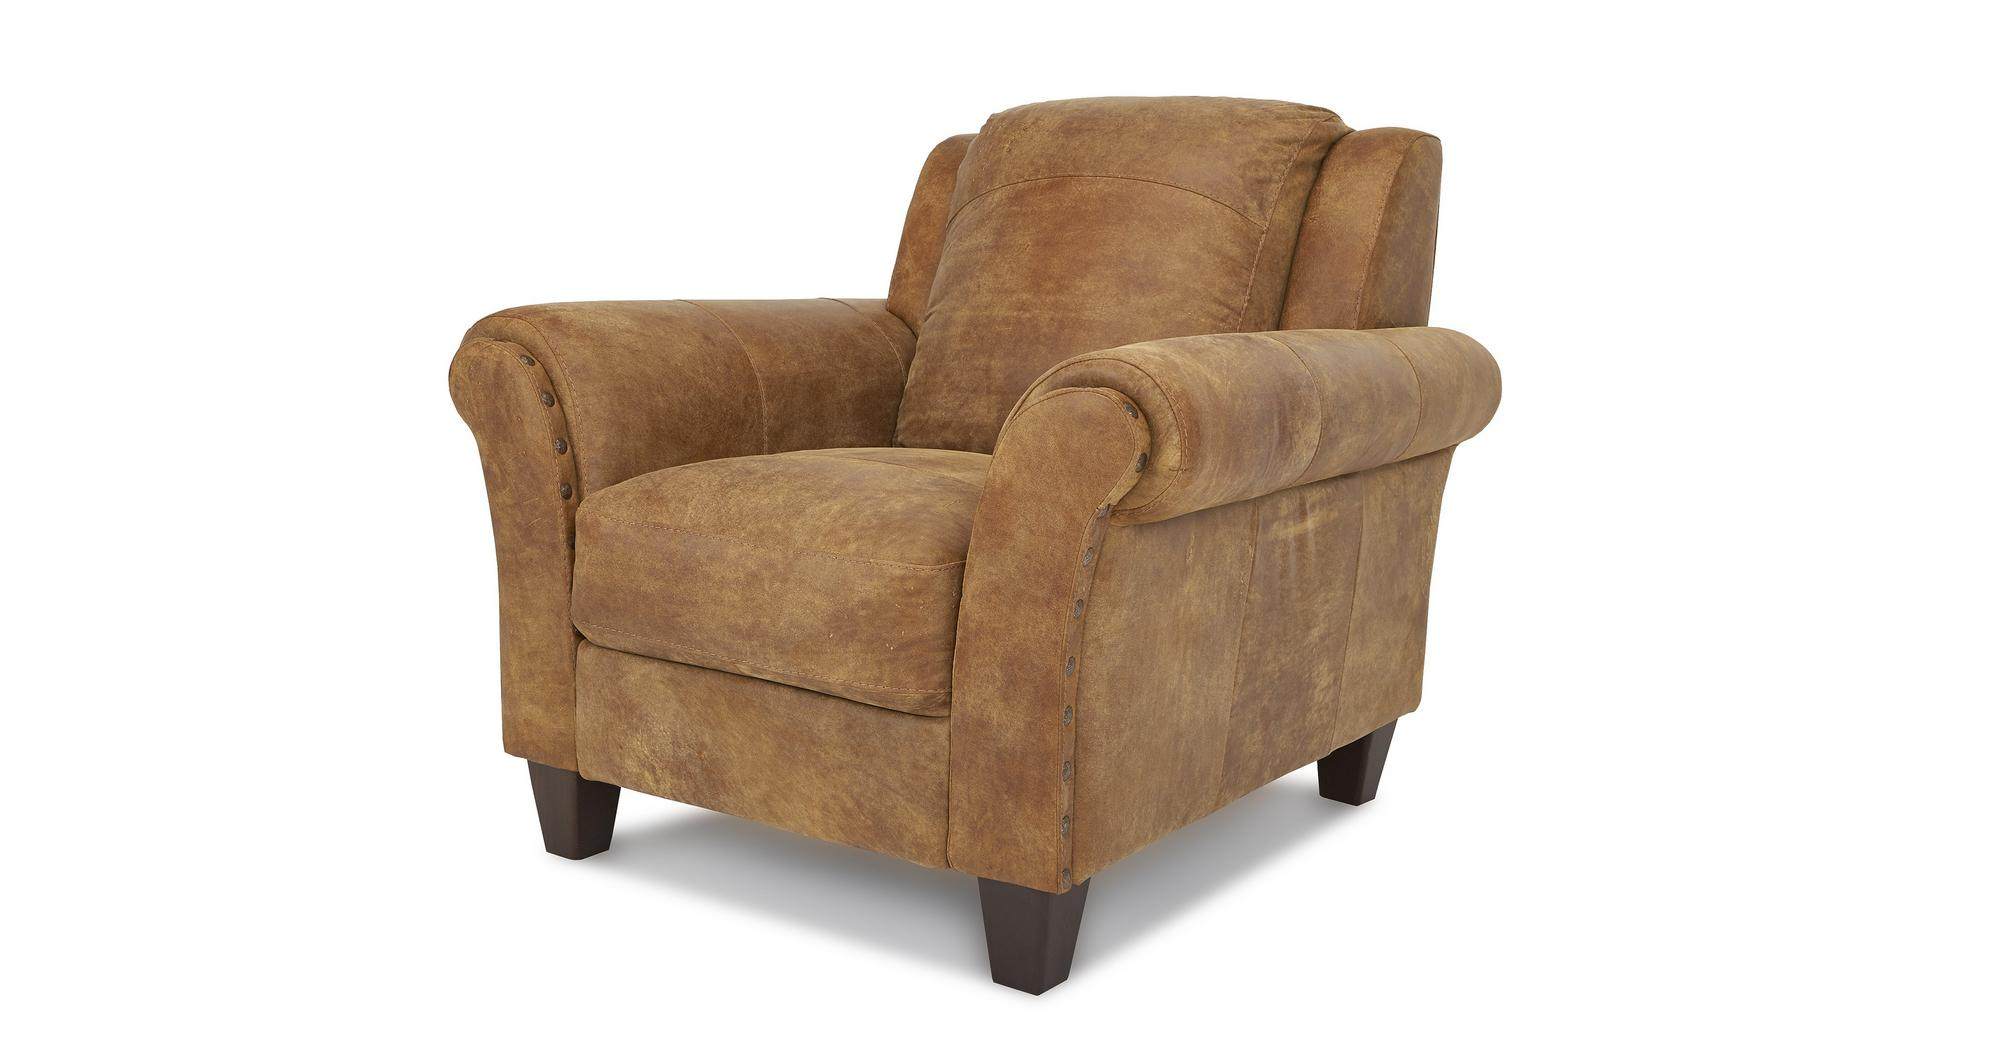 DFS Peyton Ranch Natural Leather 3 Seater Sofa & Armchair ...